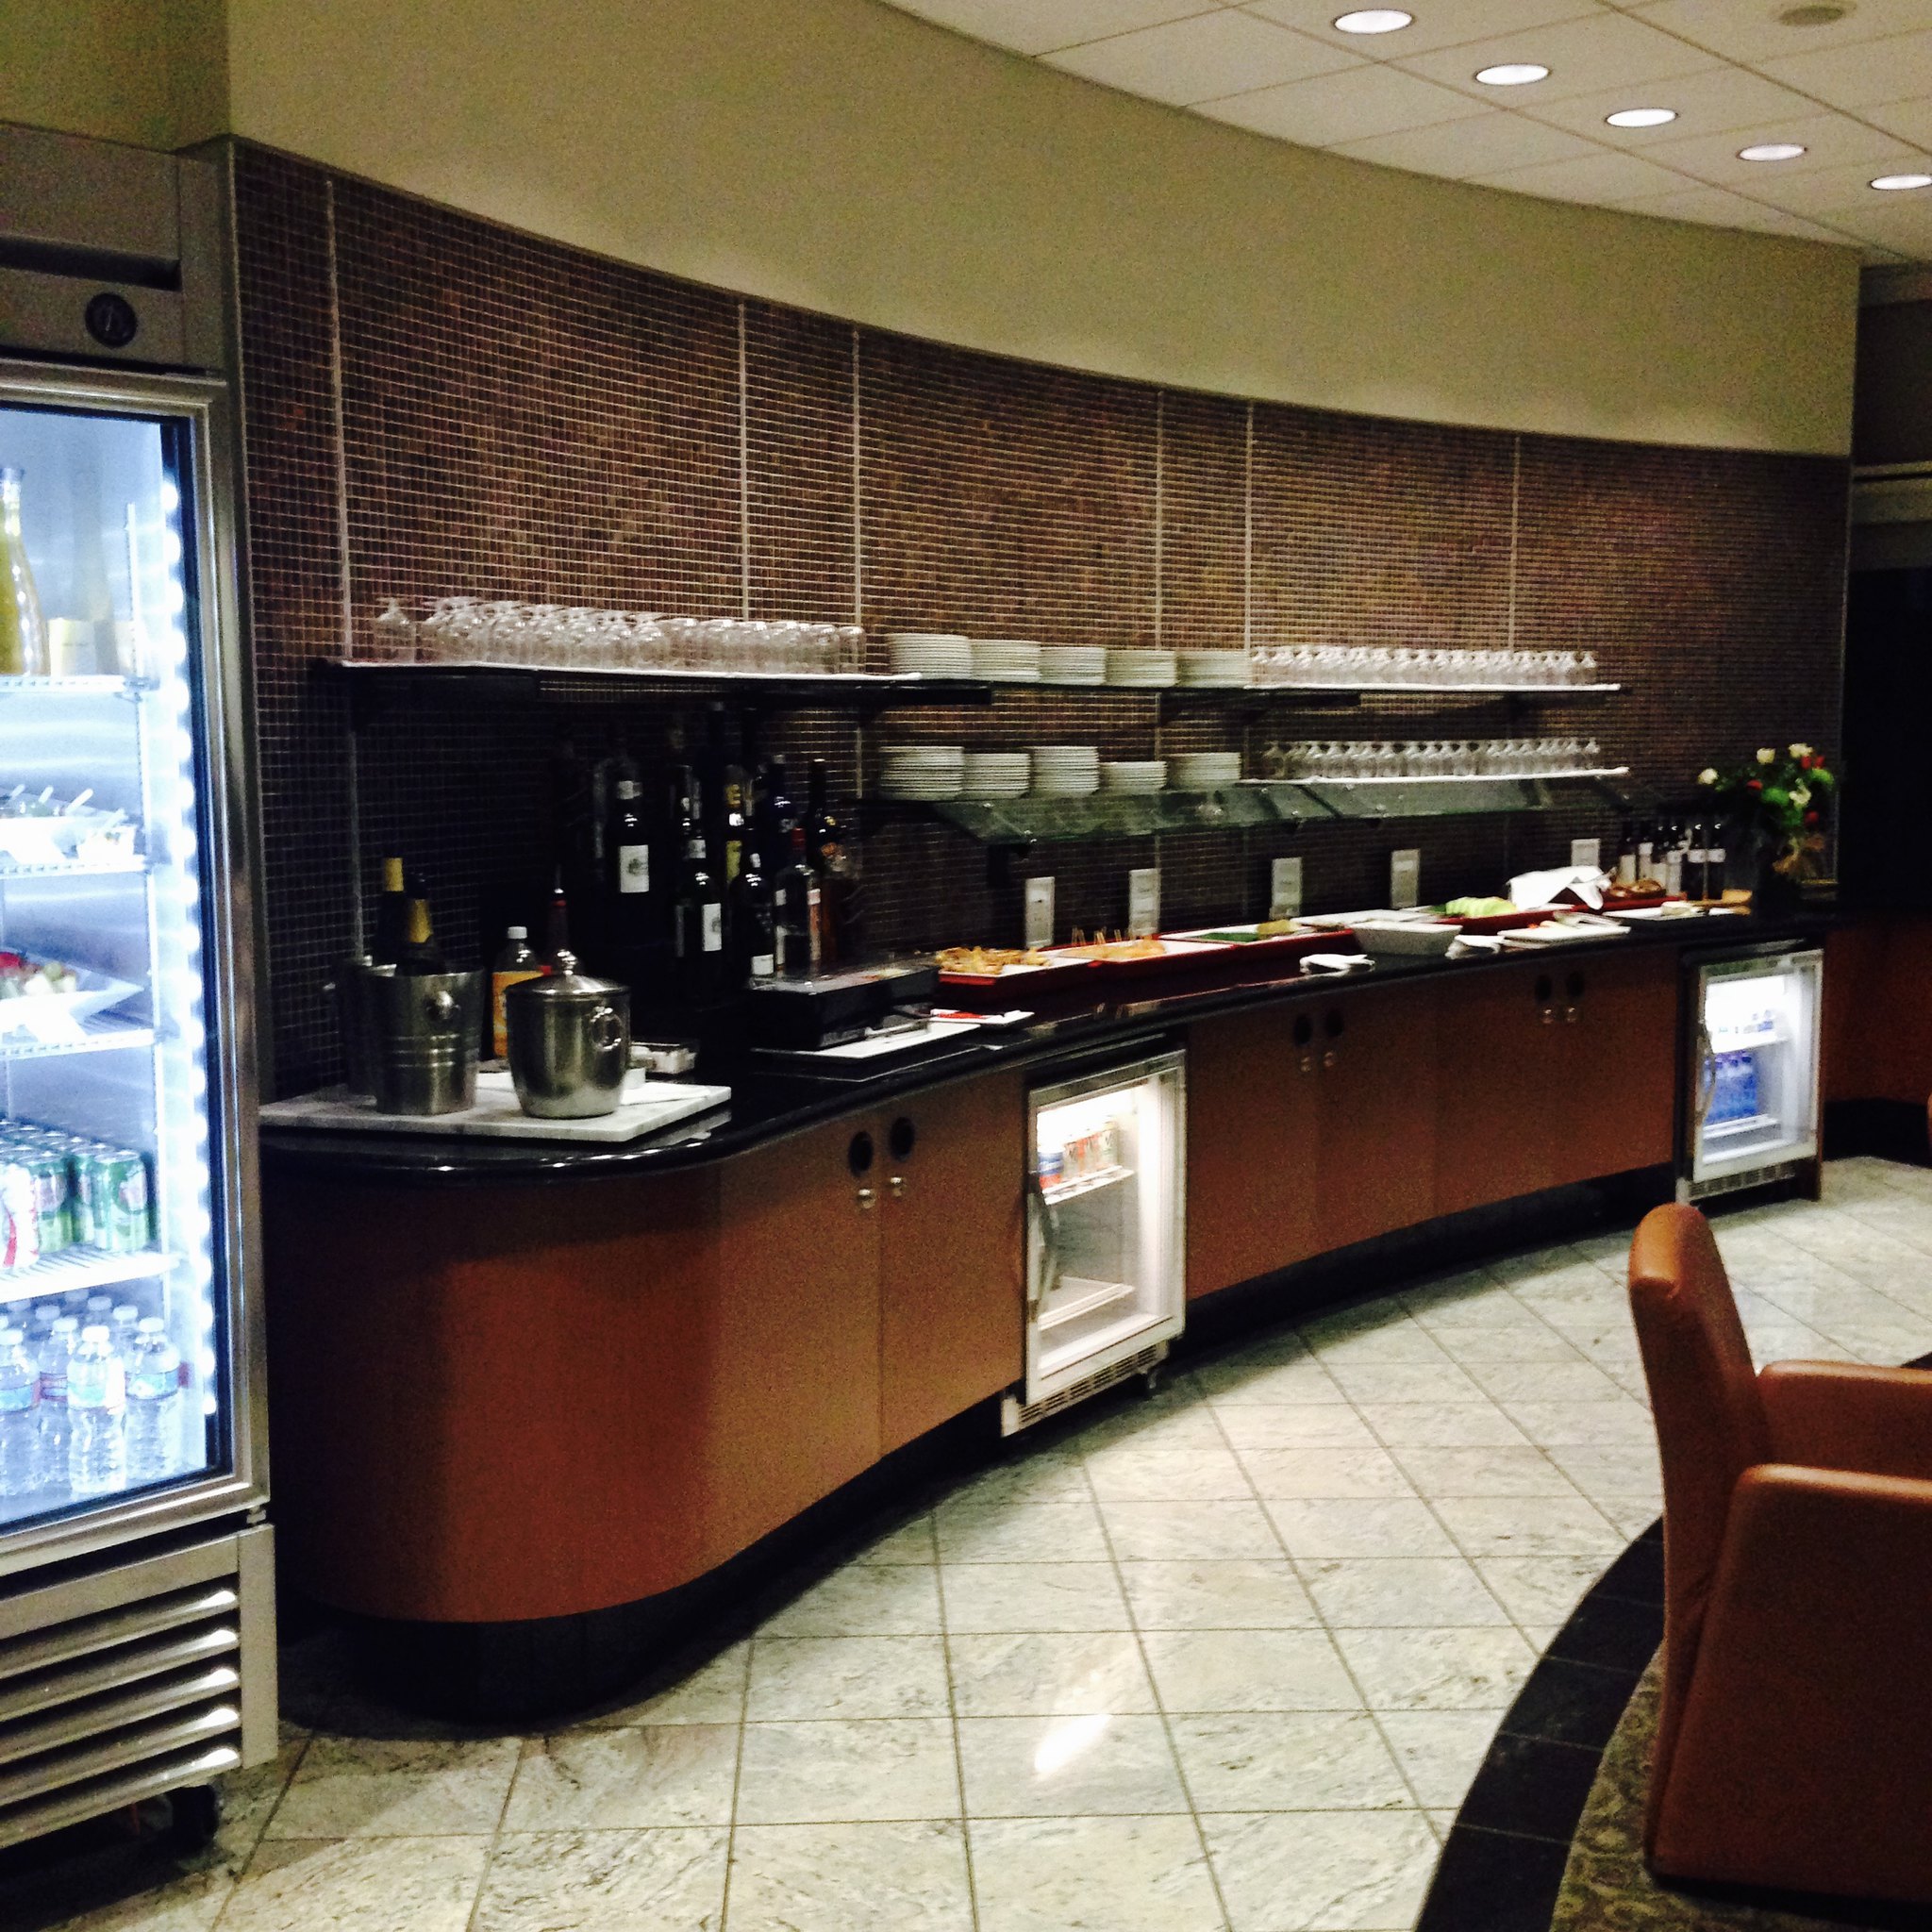 Air France/KLM Lounge at SFO